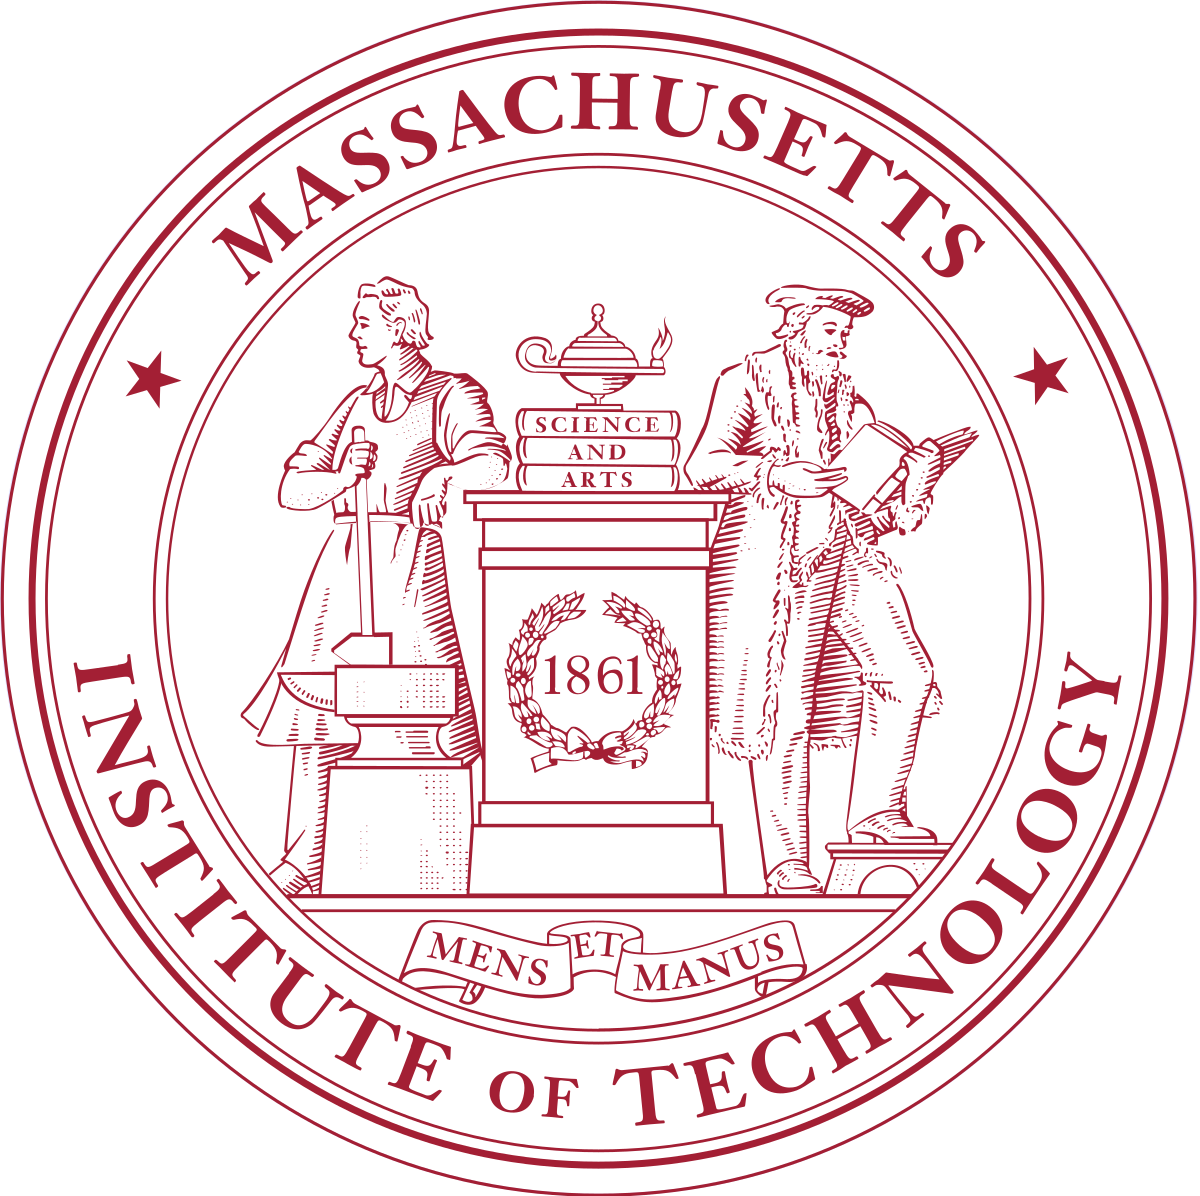 Independence drawing student. Massachusetts institute of technology